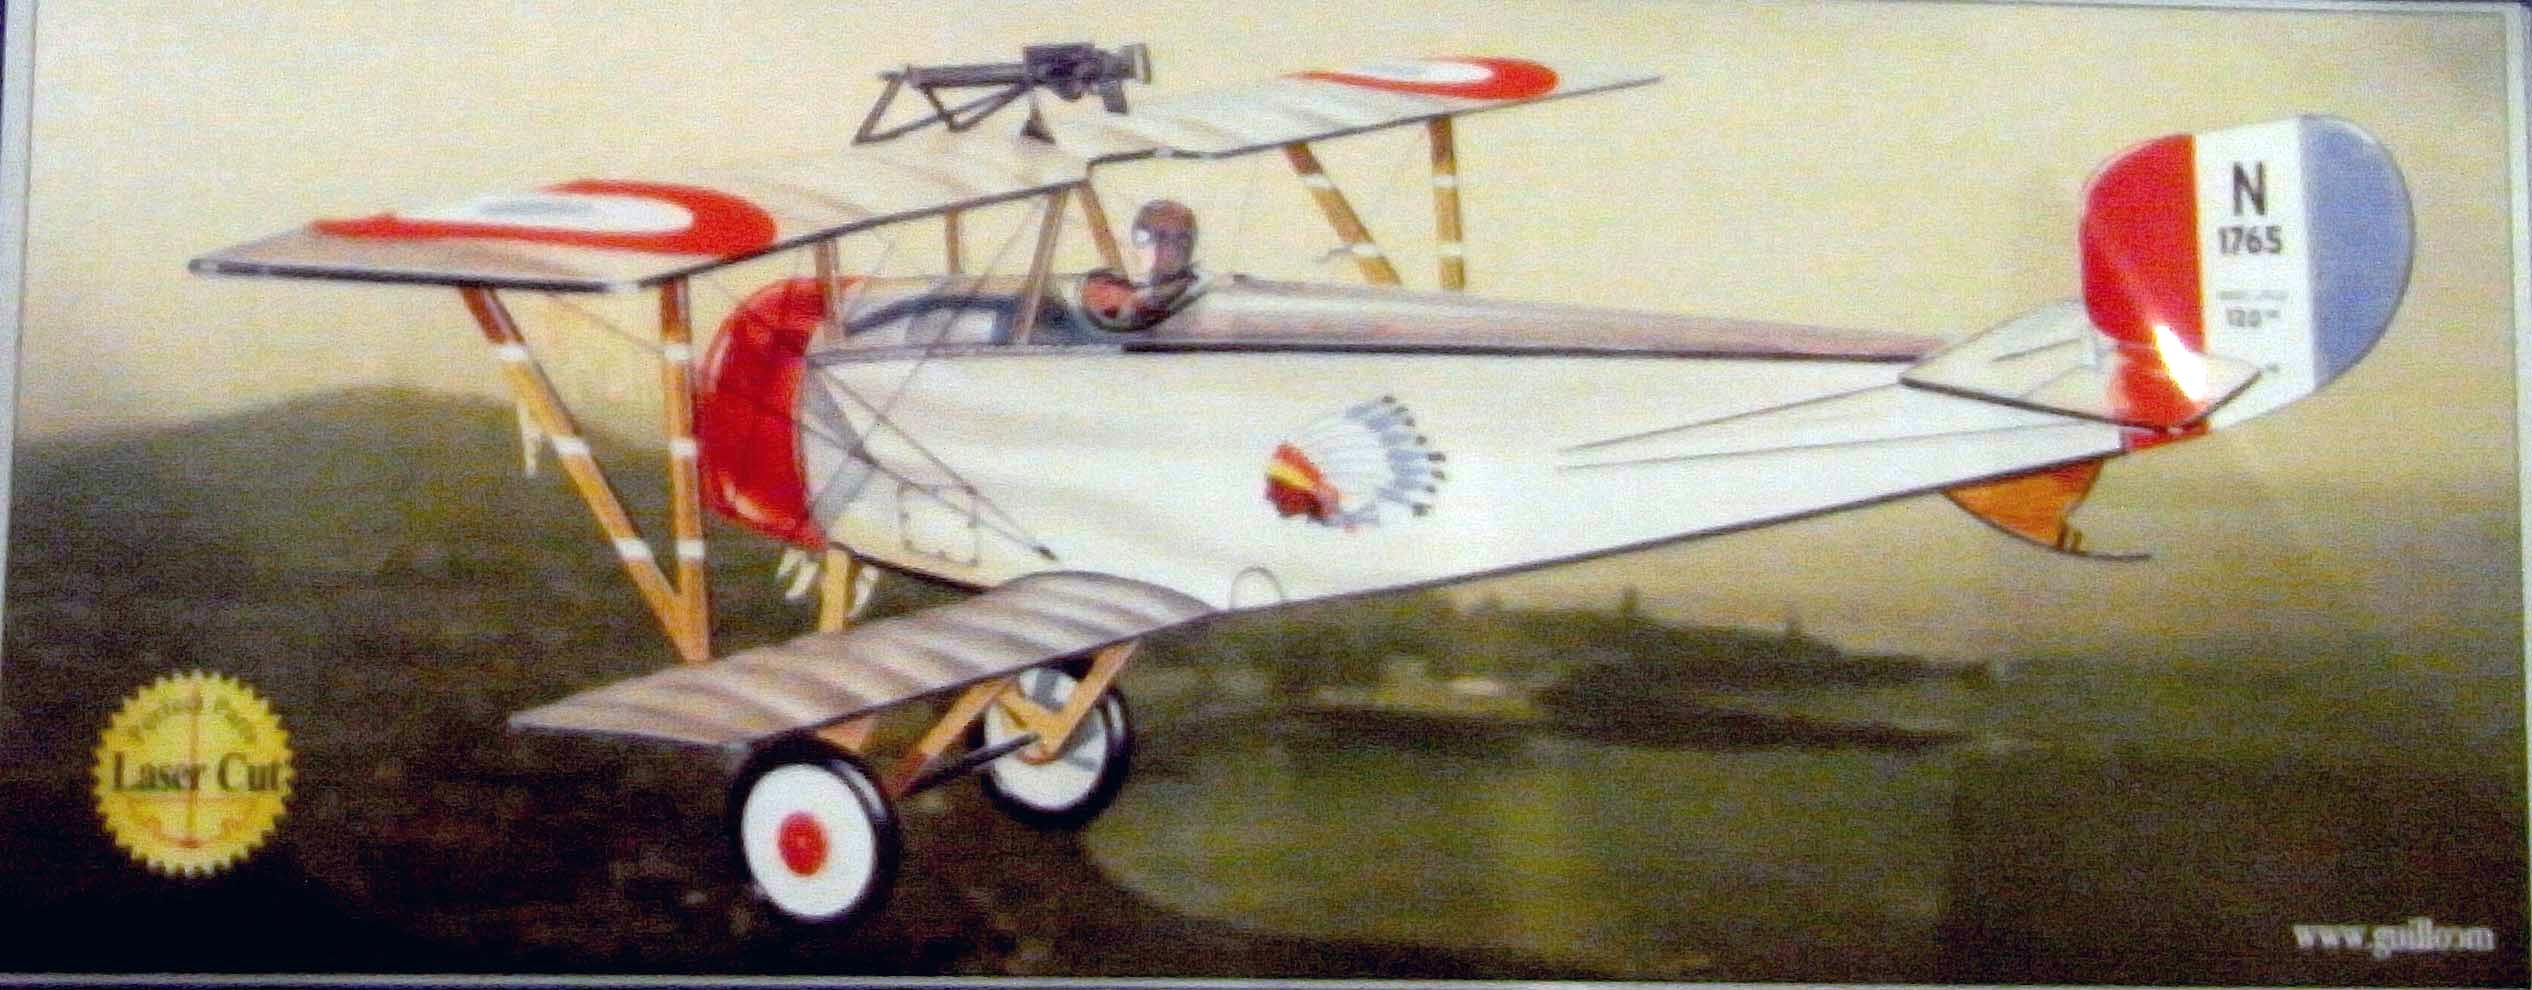 Guillows French Nieuport Ii Scale 1 12 G203